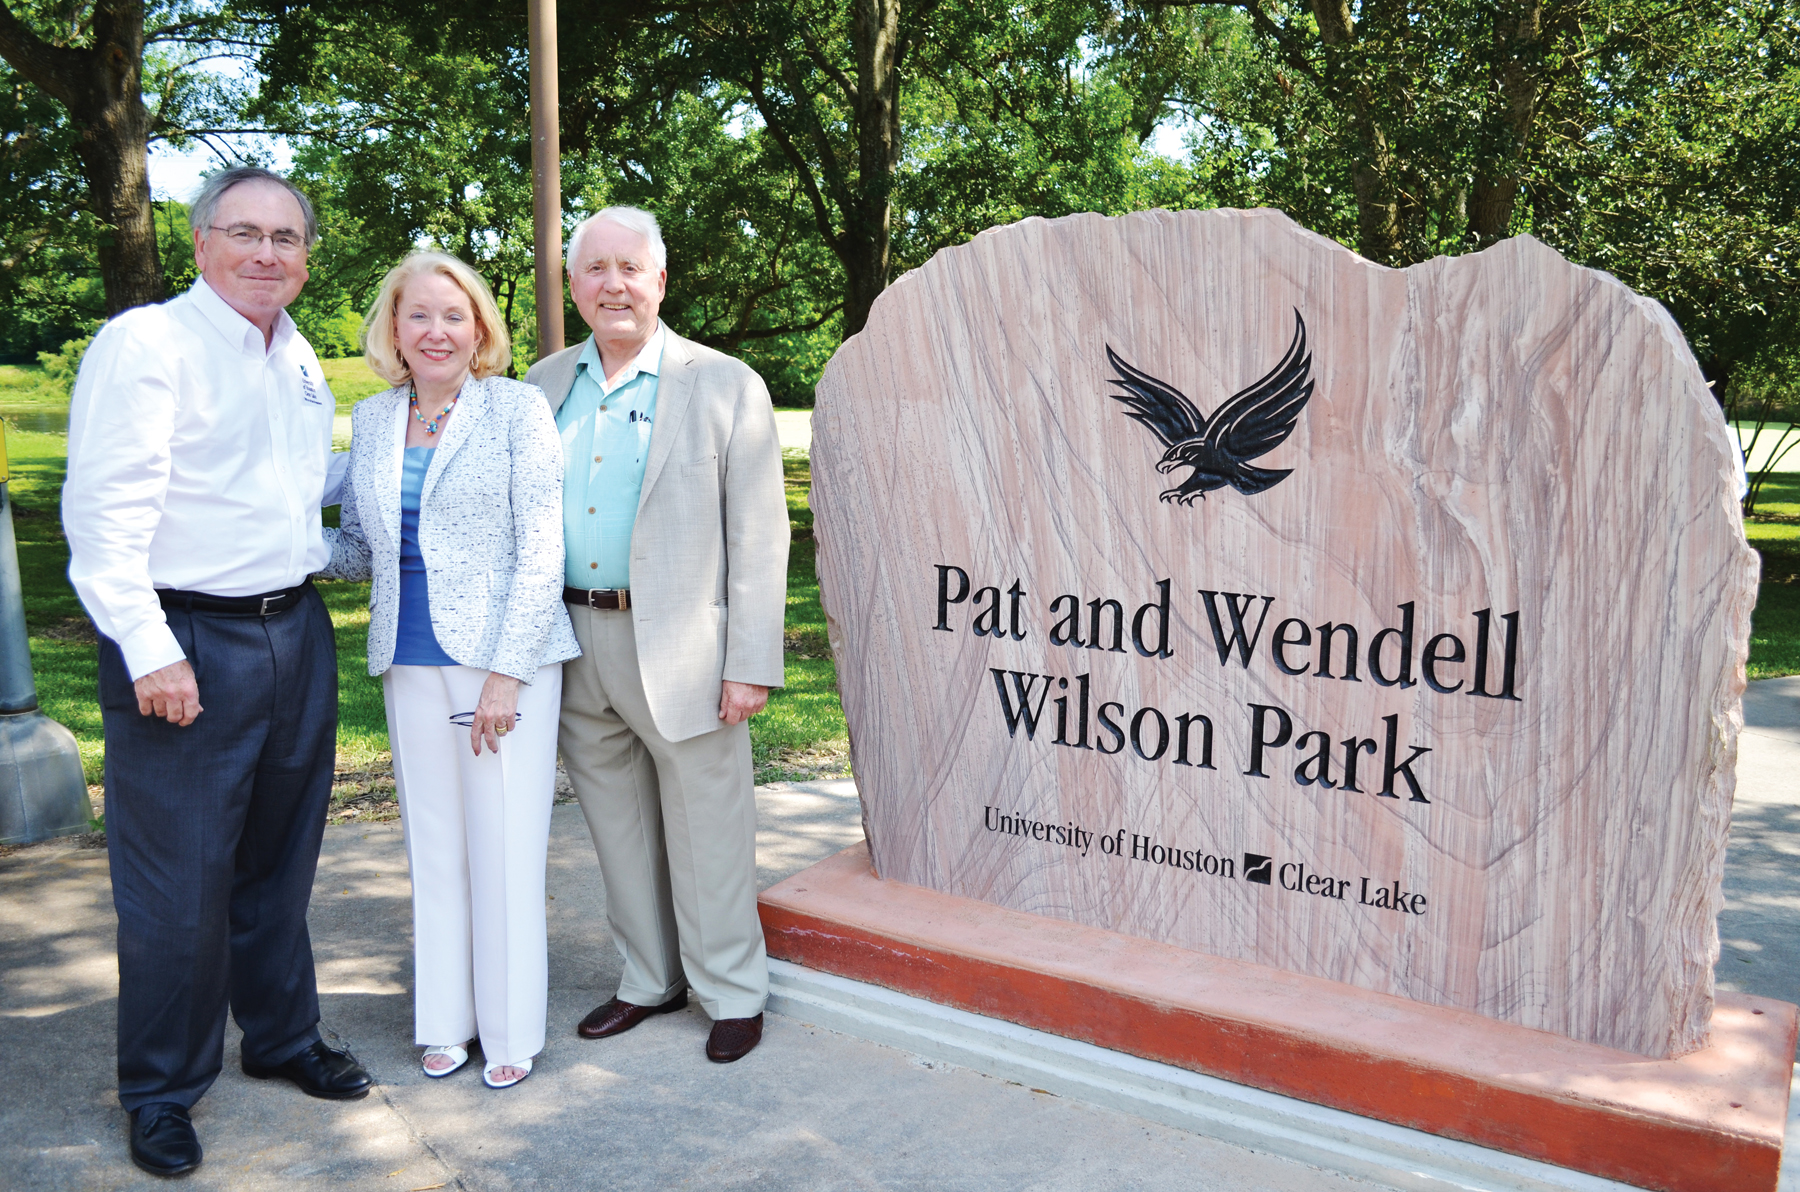 UH-Clear Lake President Dr. Bill Staples, left, thanks Pat and Wendell Wilson for all they have done for the university at the dedication of the park being built to honor them.